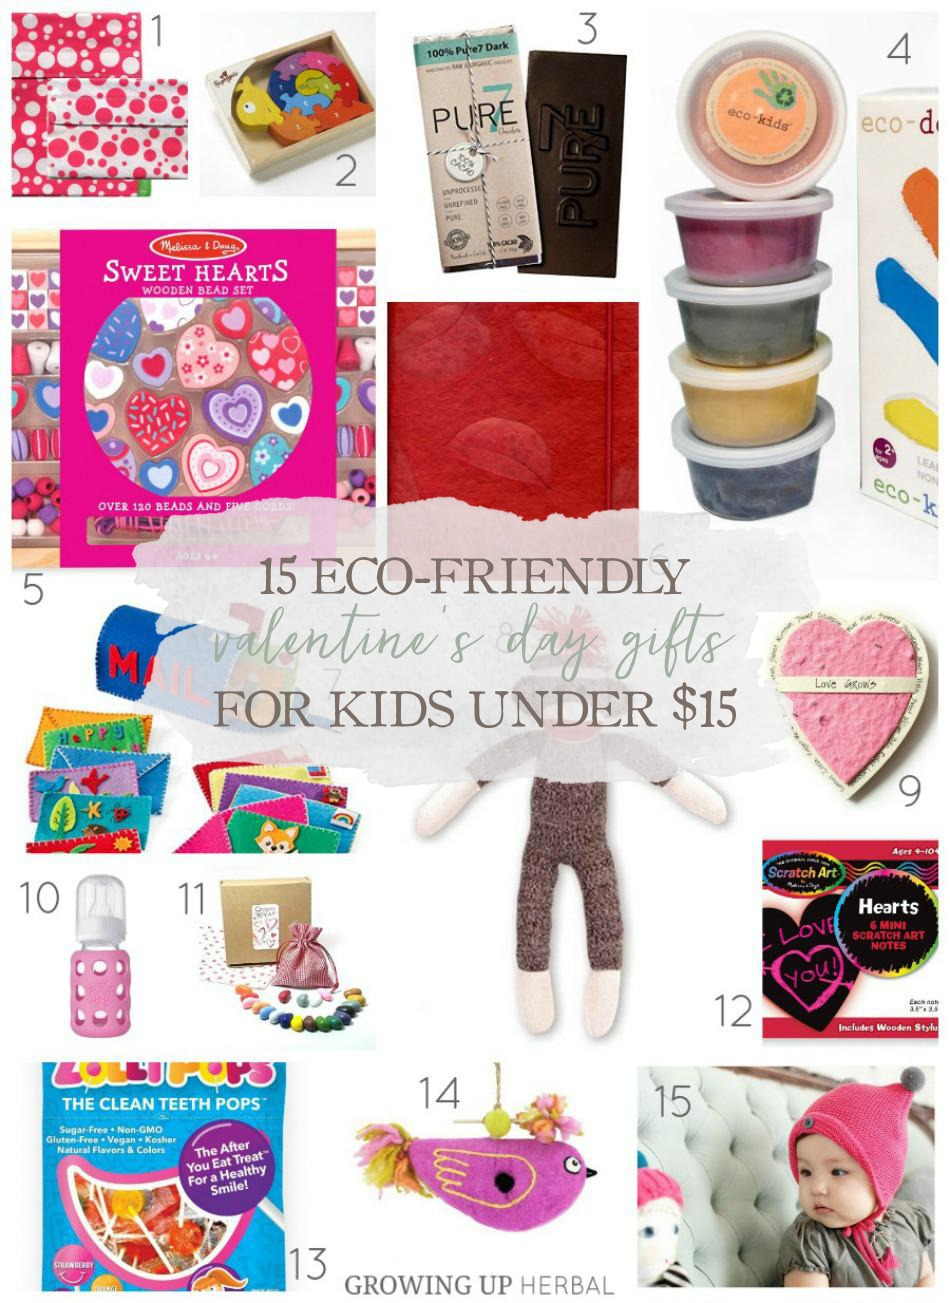 15 Eco-Friendly Valentine's Day Gifts For Kids Under $15 | Growing Up Herbal | Here are 15 eco-friendly Valentine's Day gifts, all under $15, perfect for your kiddo!